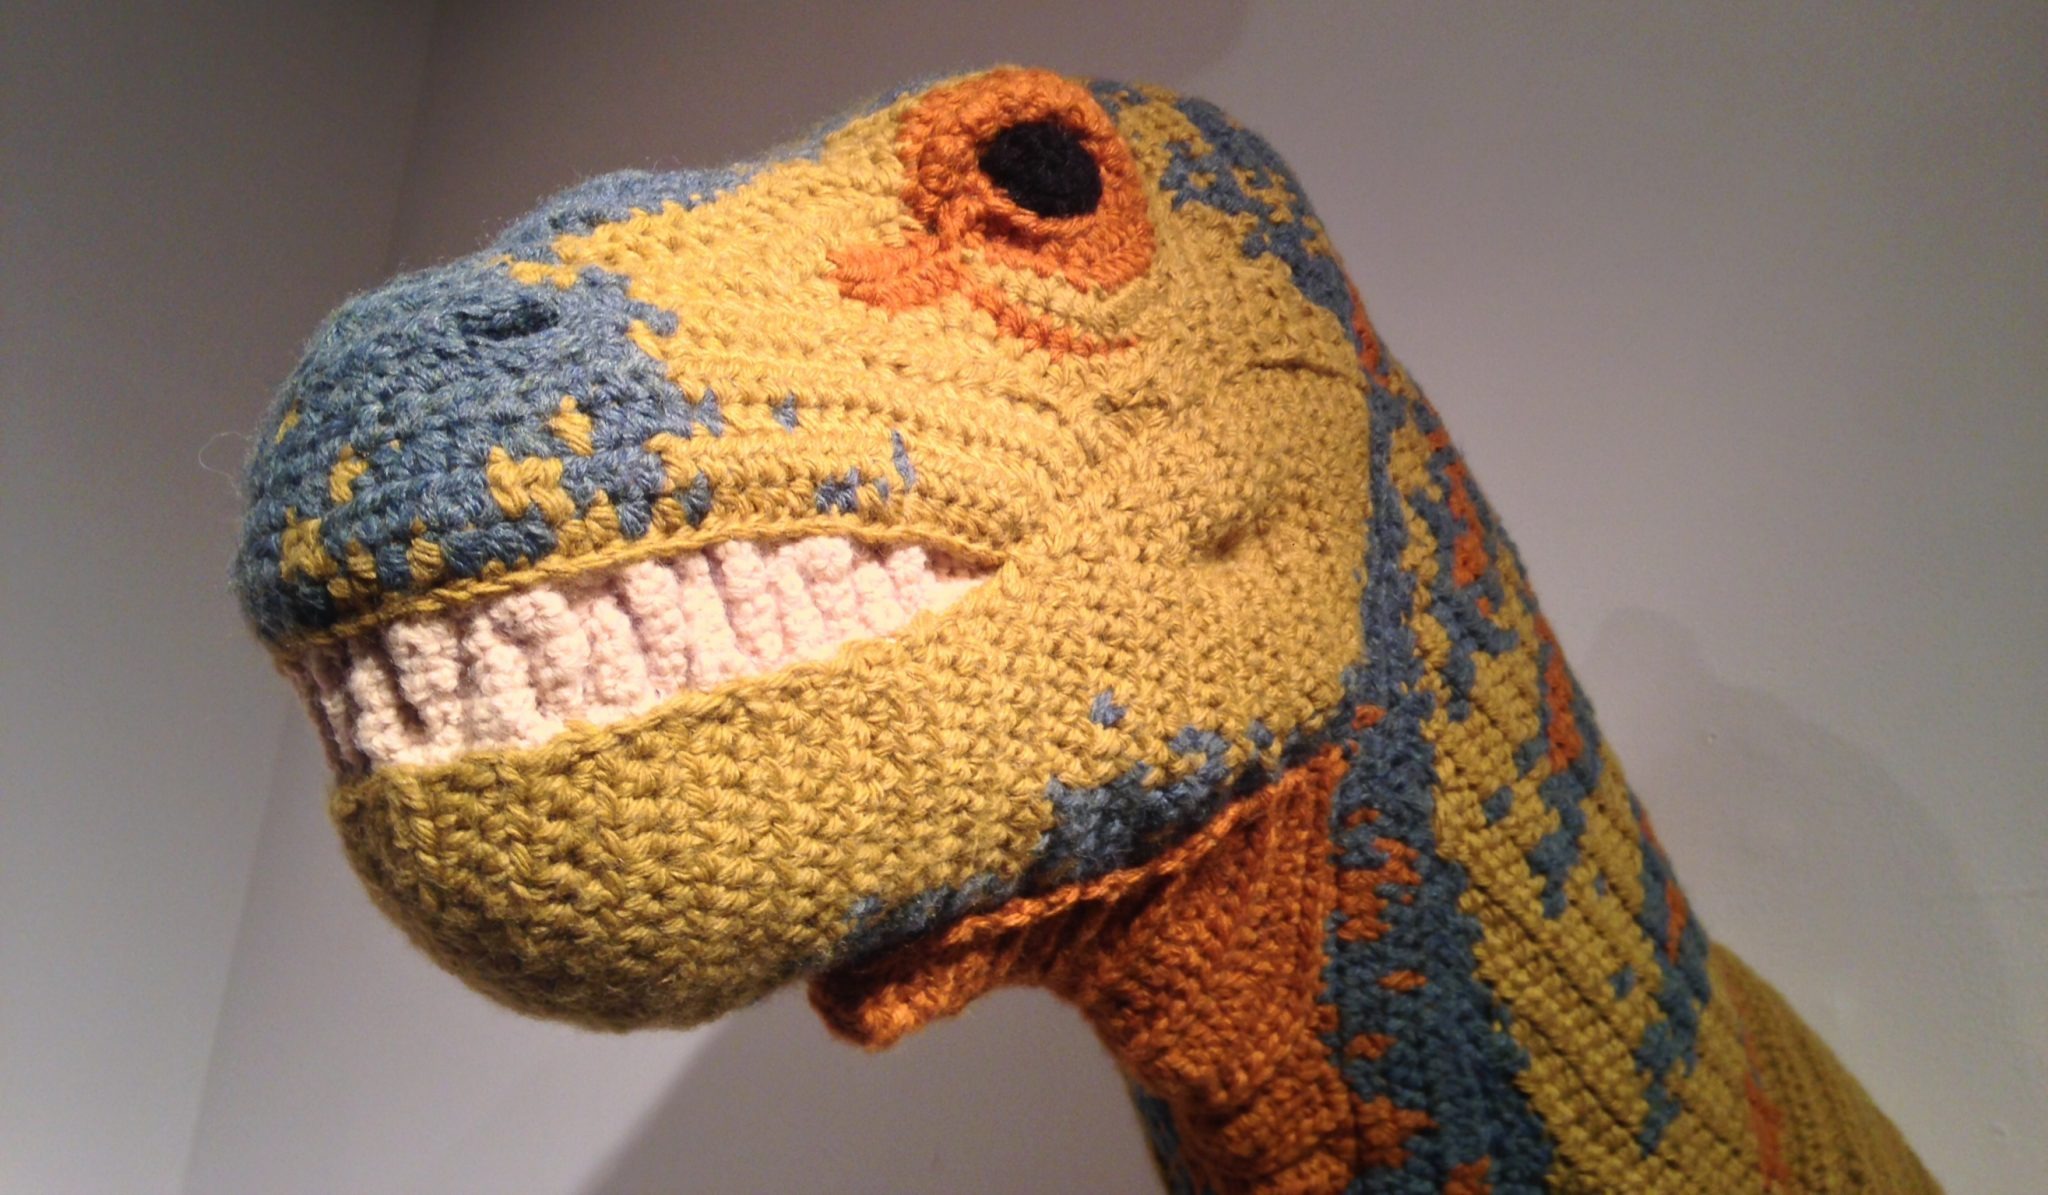 Crochet Art Patterns : Crochet Art